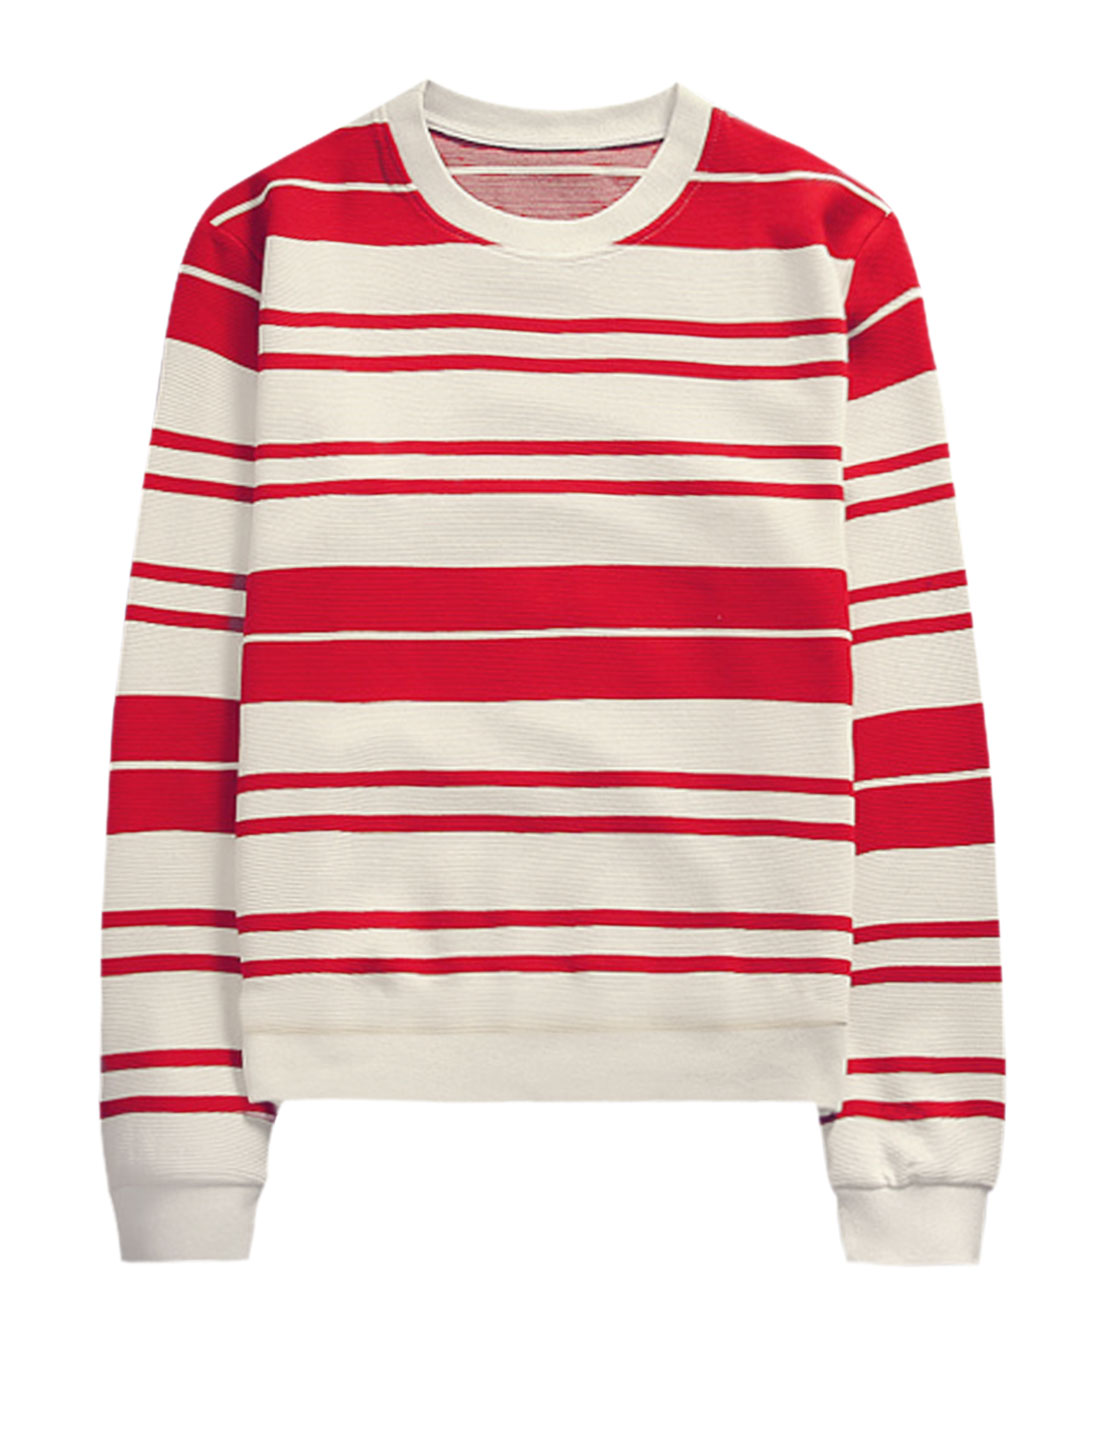 Men Stripes Prints Long-sleeved Crew Neck Ribbed Trim Leisure Tops Red White M